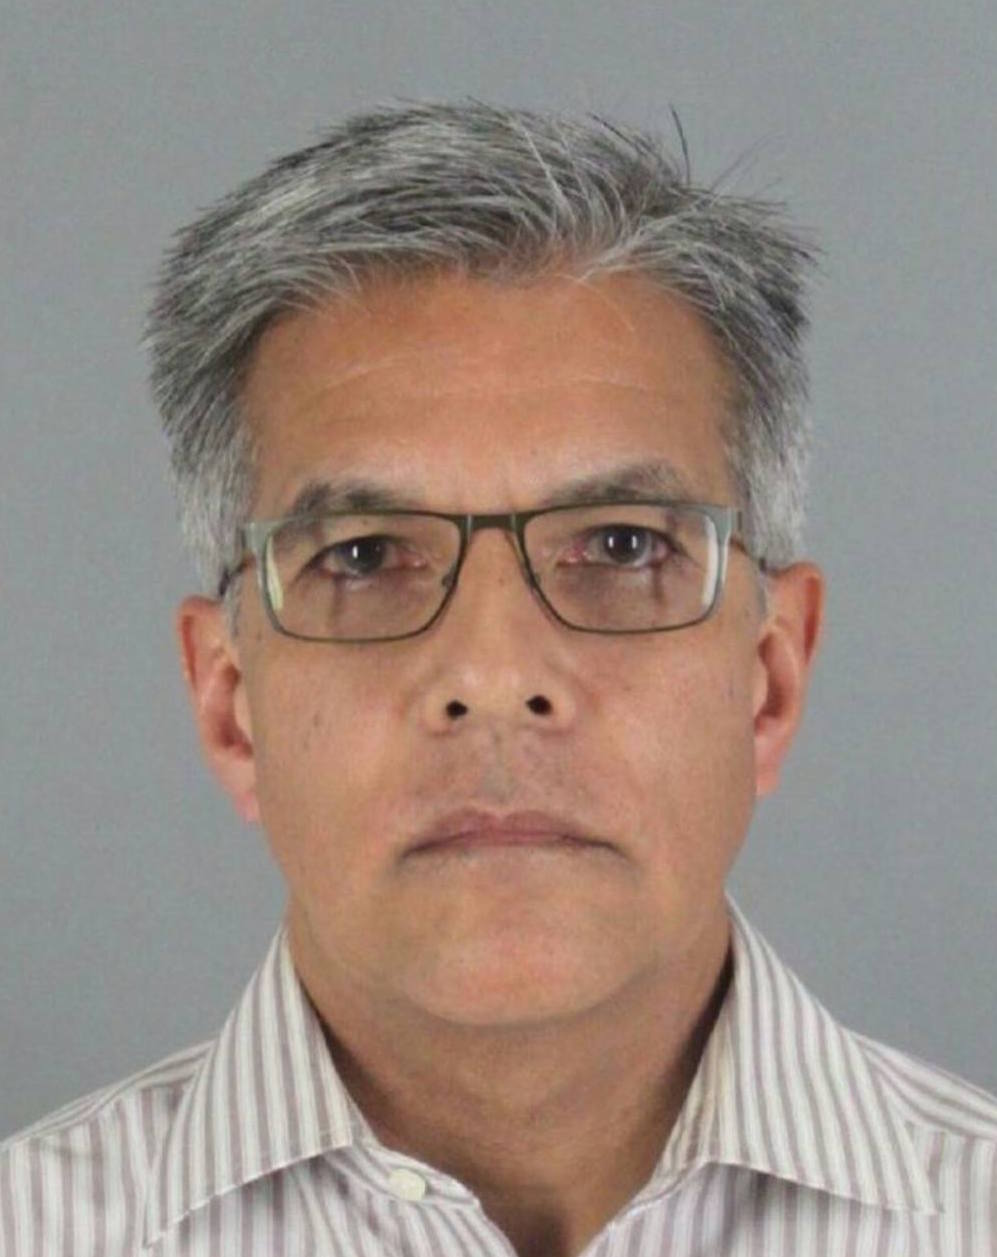 Ken Crowell, a teacher at Westborough Middle School was arrested today